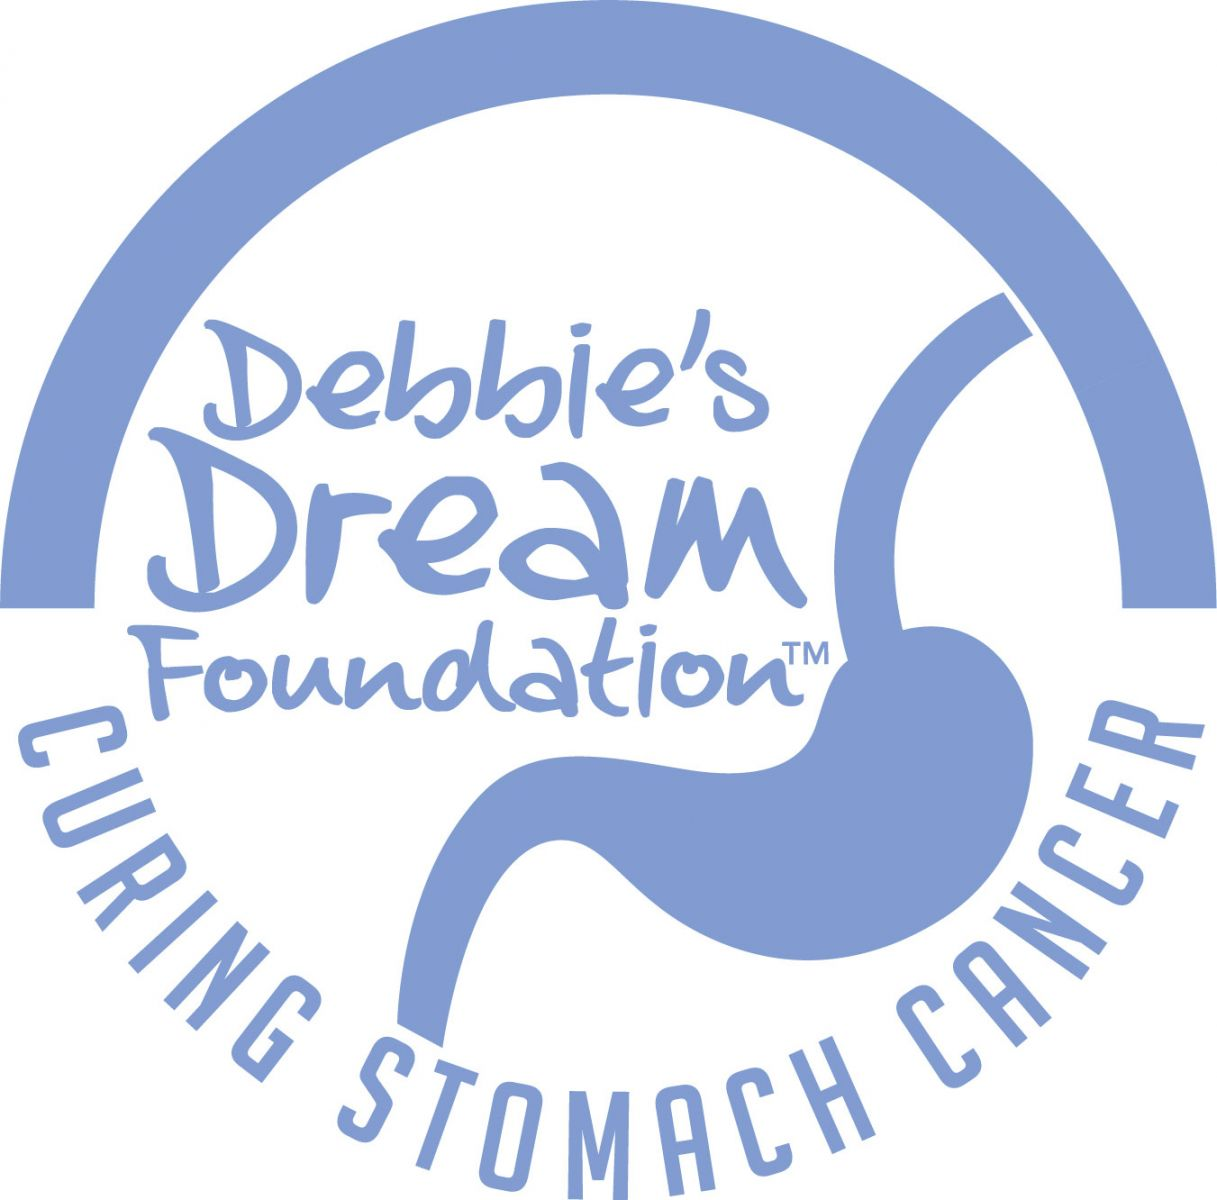 Debbie's Dream is finding a treatment for stomach cancer